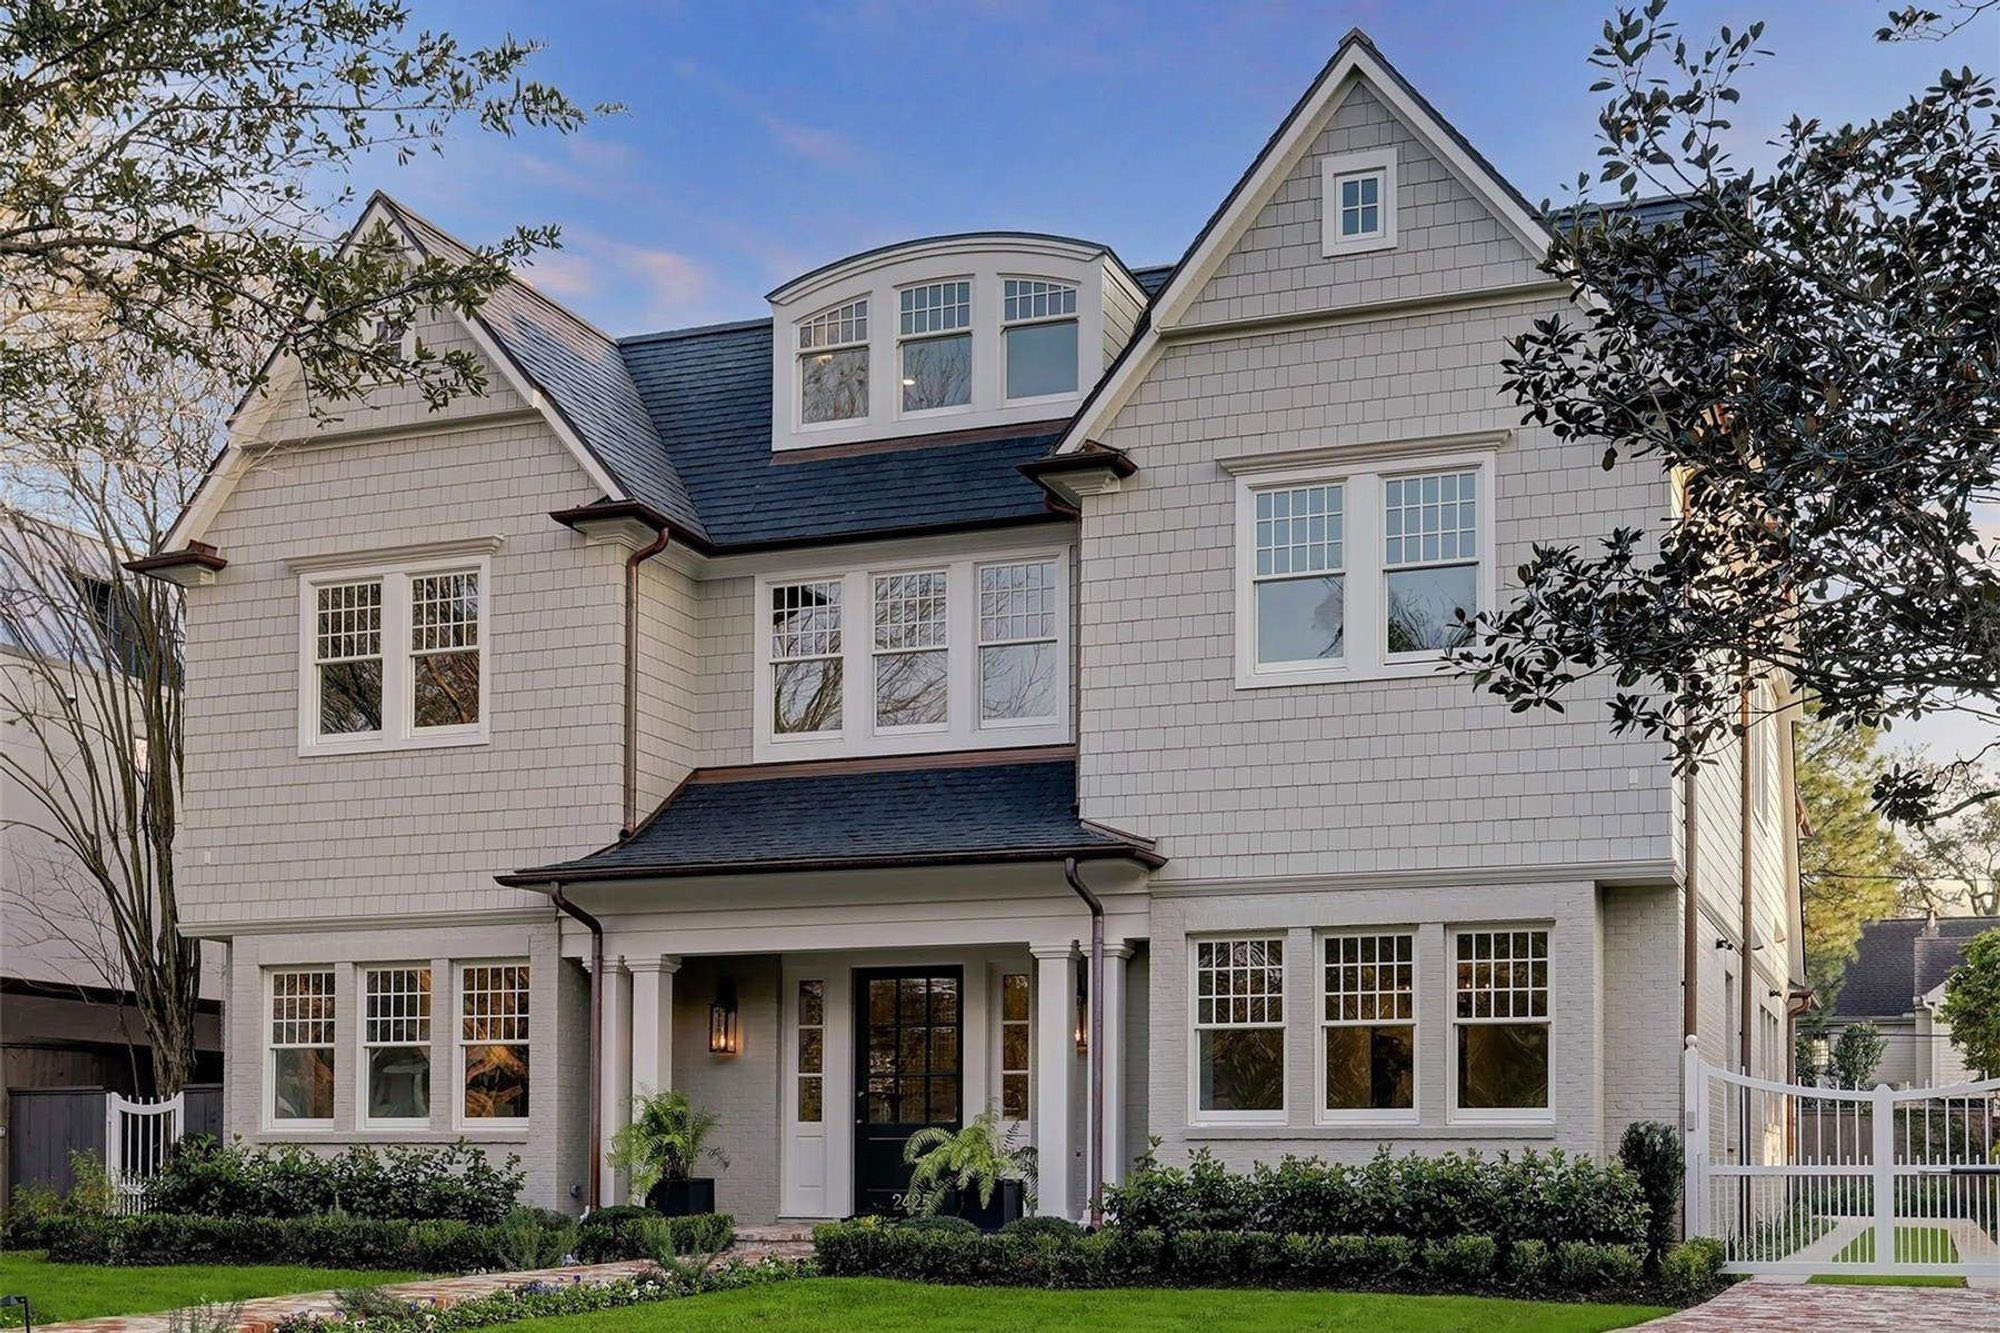 Shingle style home with a shed style portico supported by four square columns.